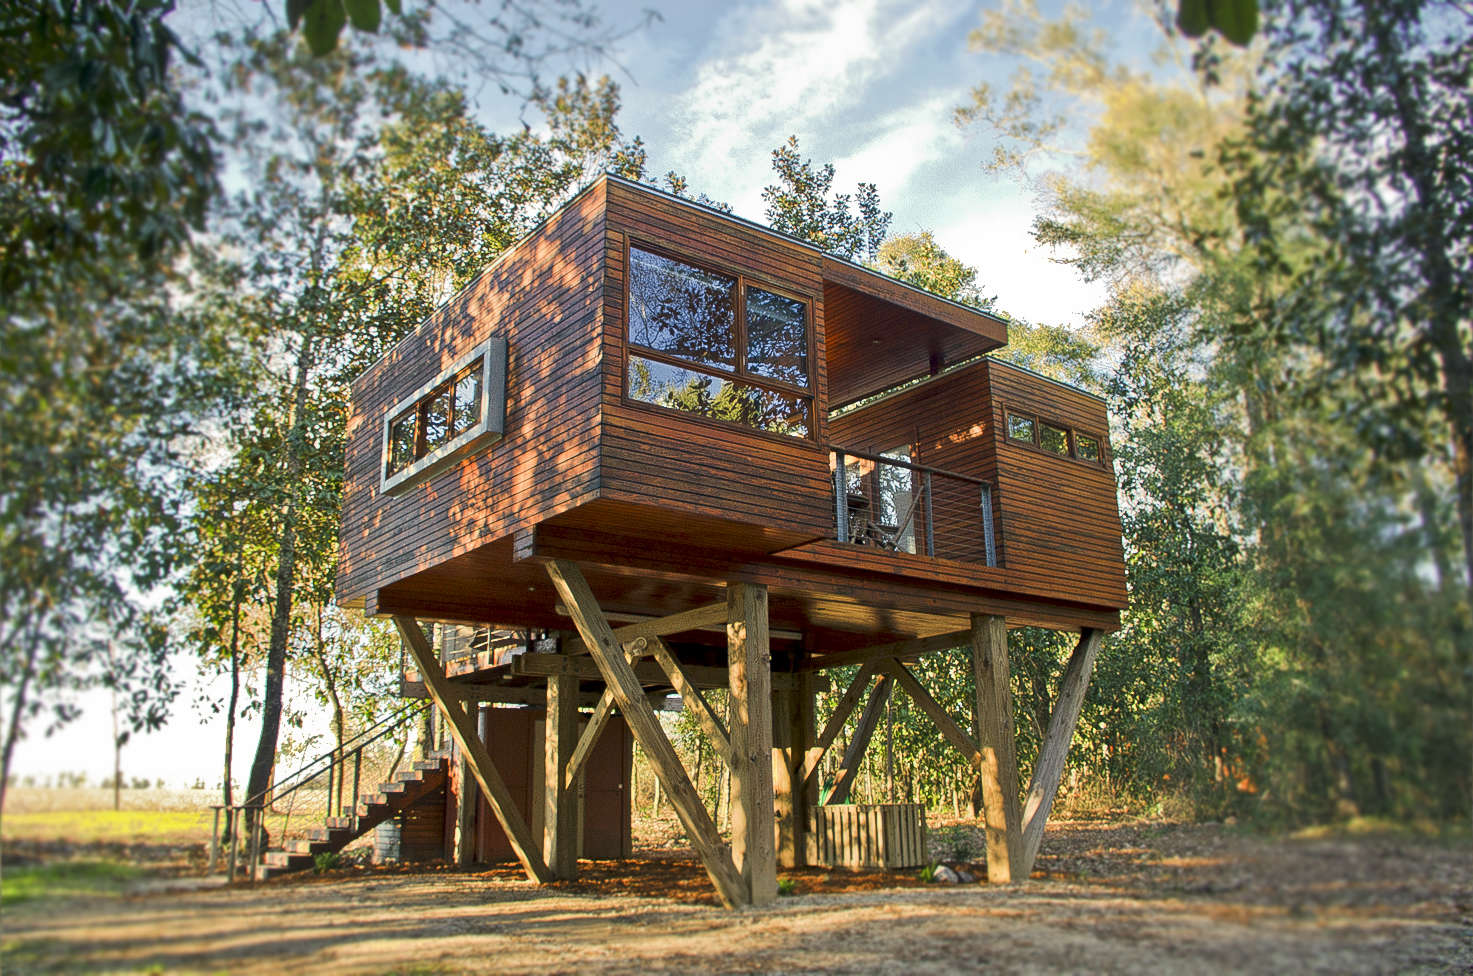 Treehouse, Coldwater Gardens, FL: 7 Hipcamper reviews and 16 photos